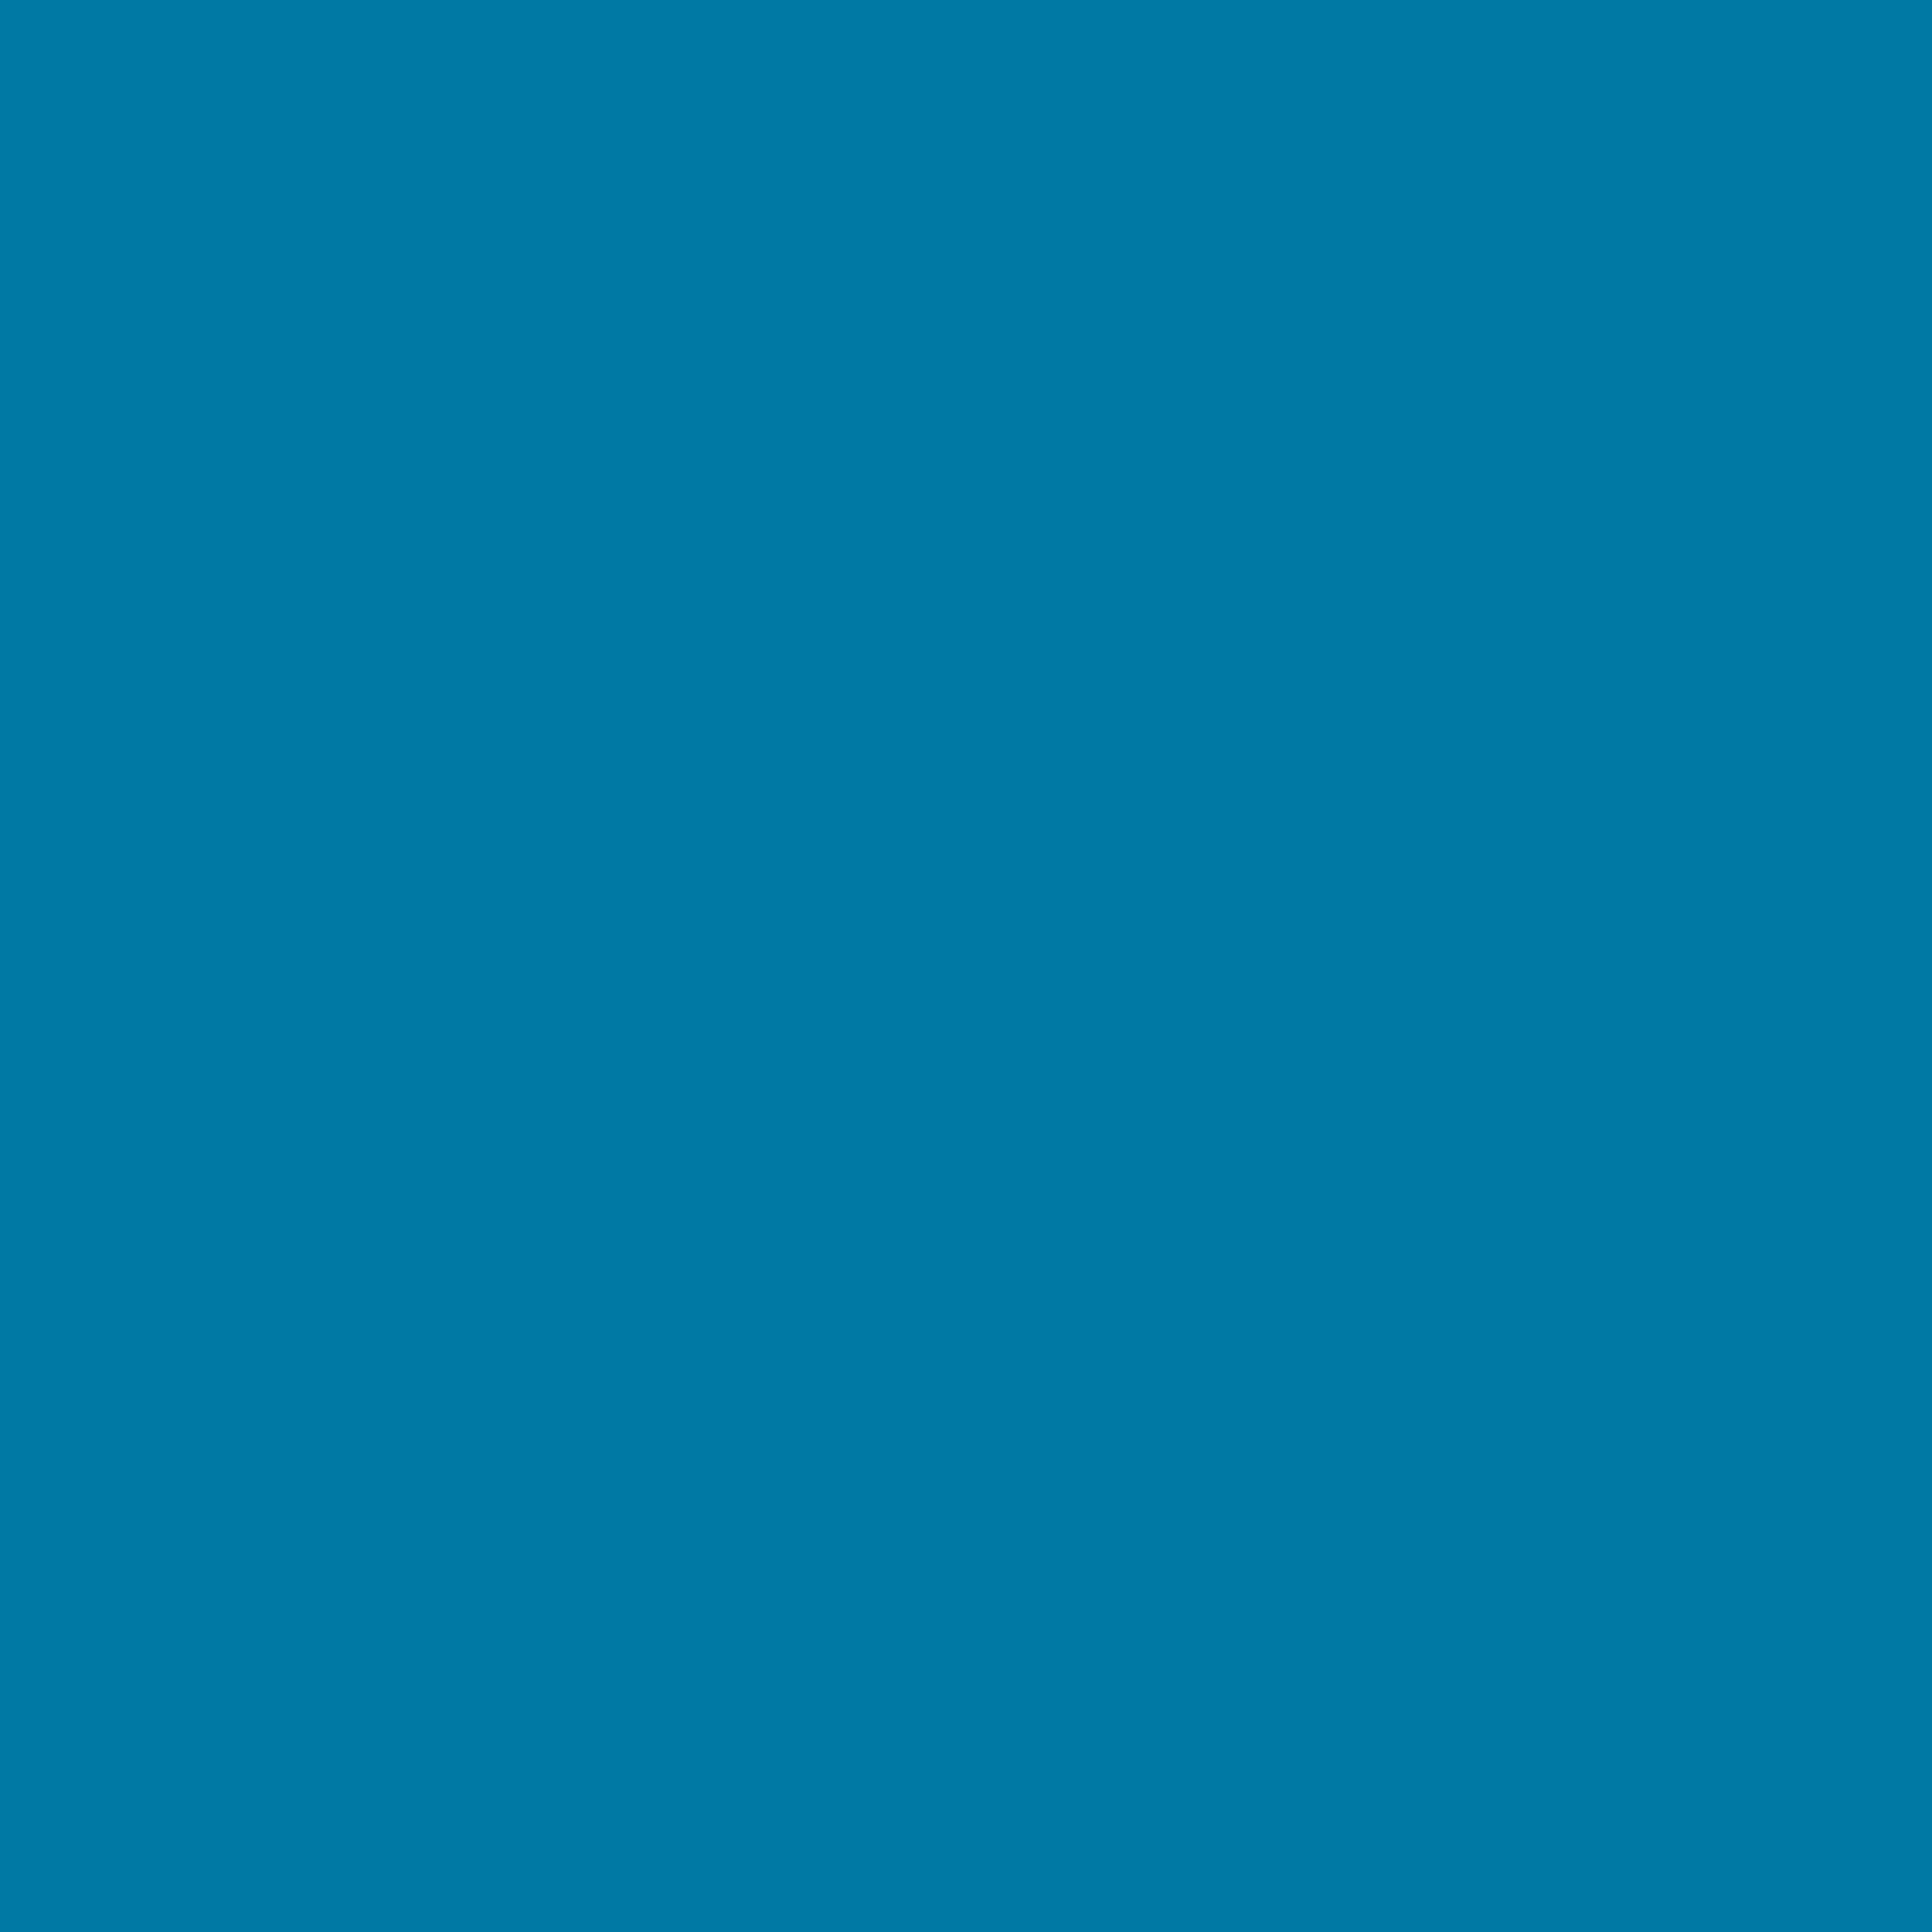 3600x3600 CG Blue Solid Color Background